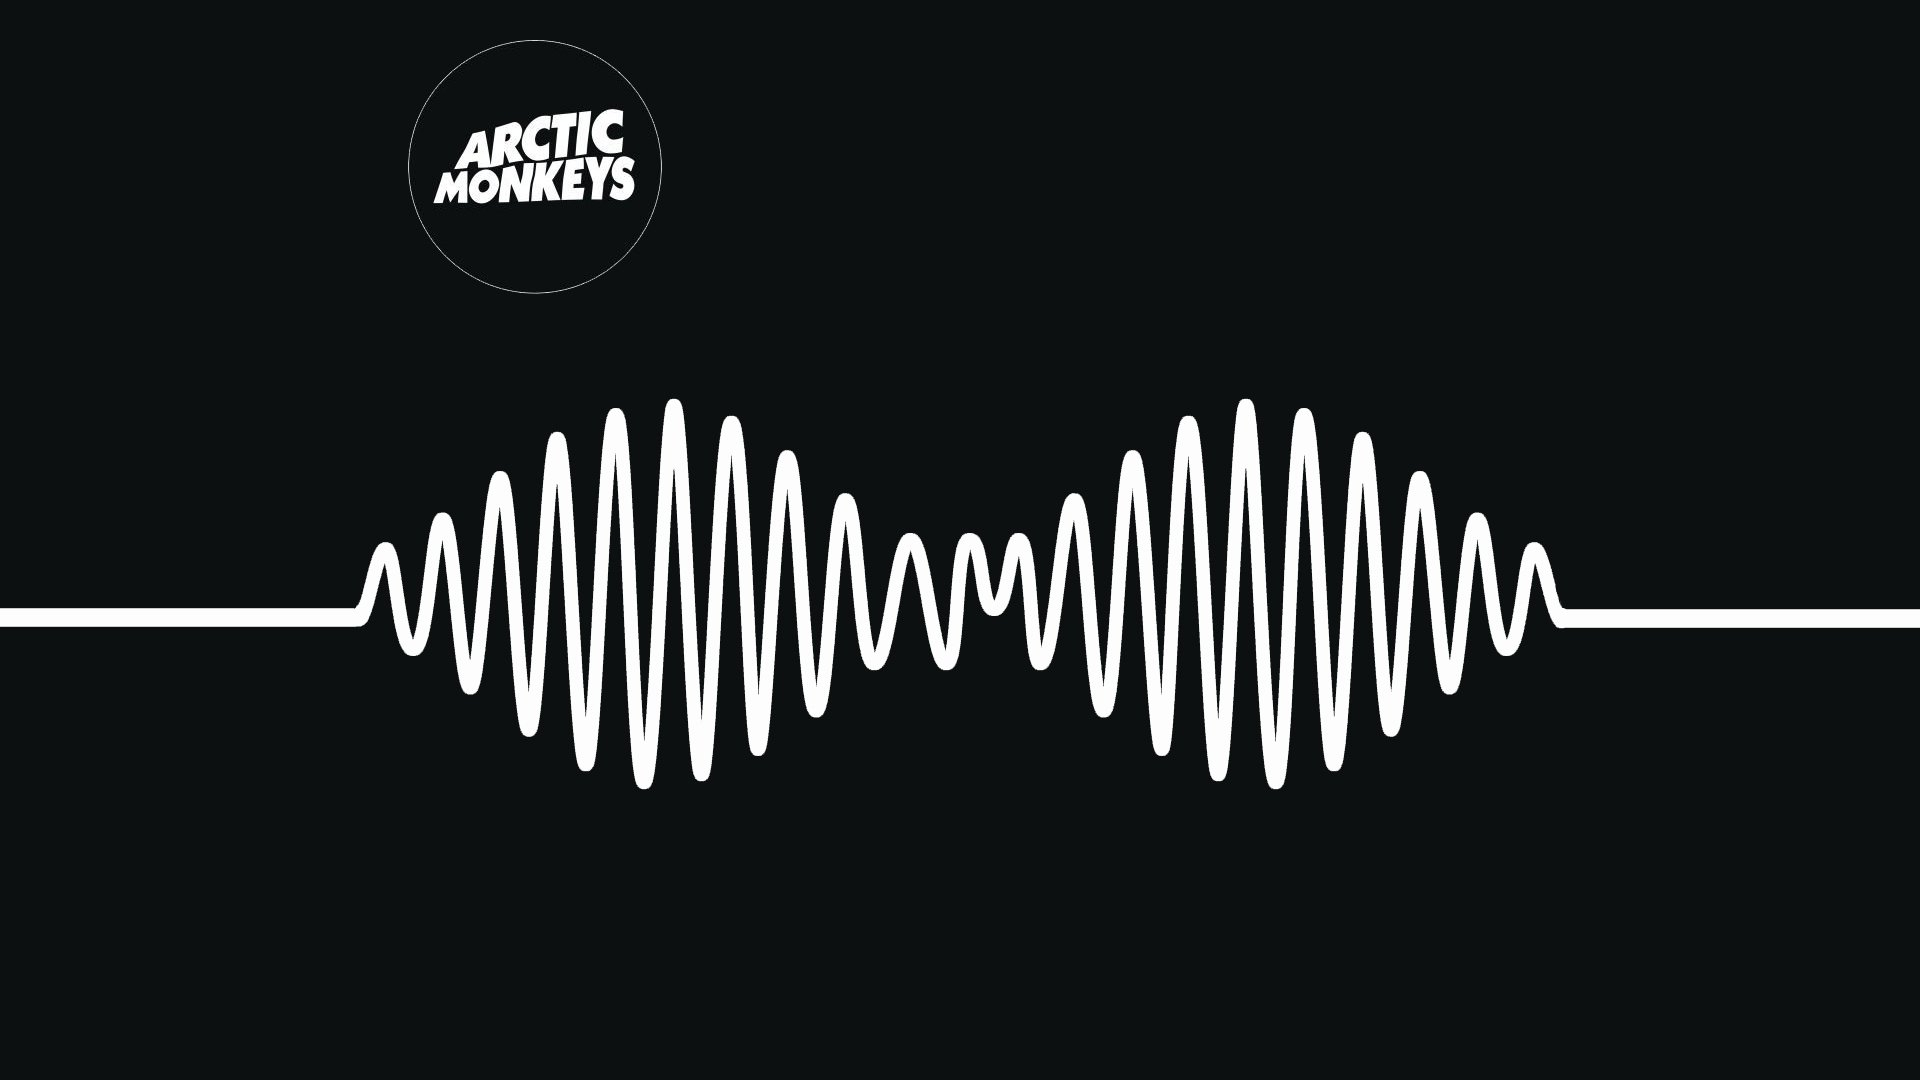 22 arctic monkeys hd wallpapers | background images - wallpaper abyss